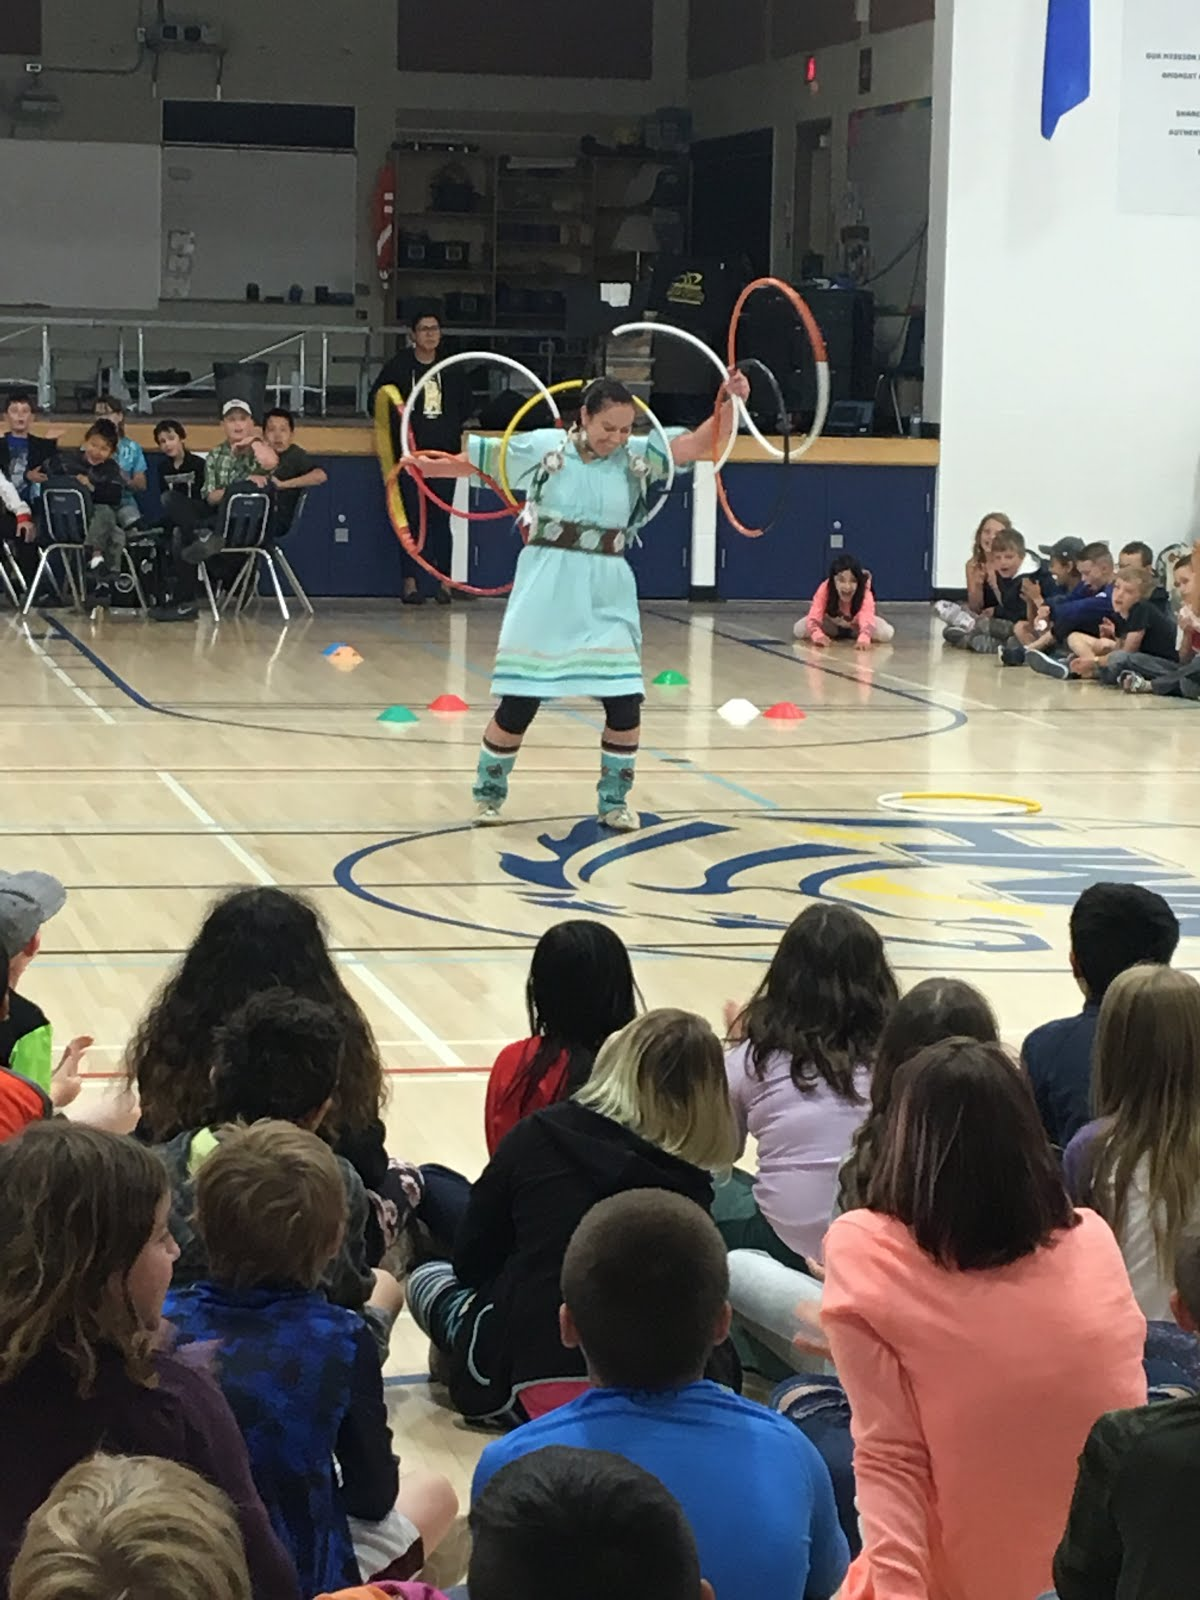 We celebrated National Indigenous Peoples Day